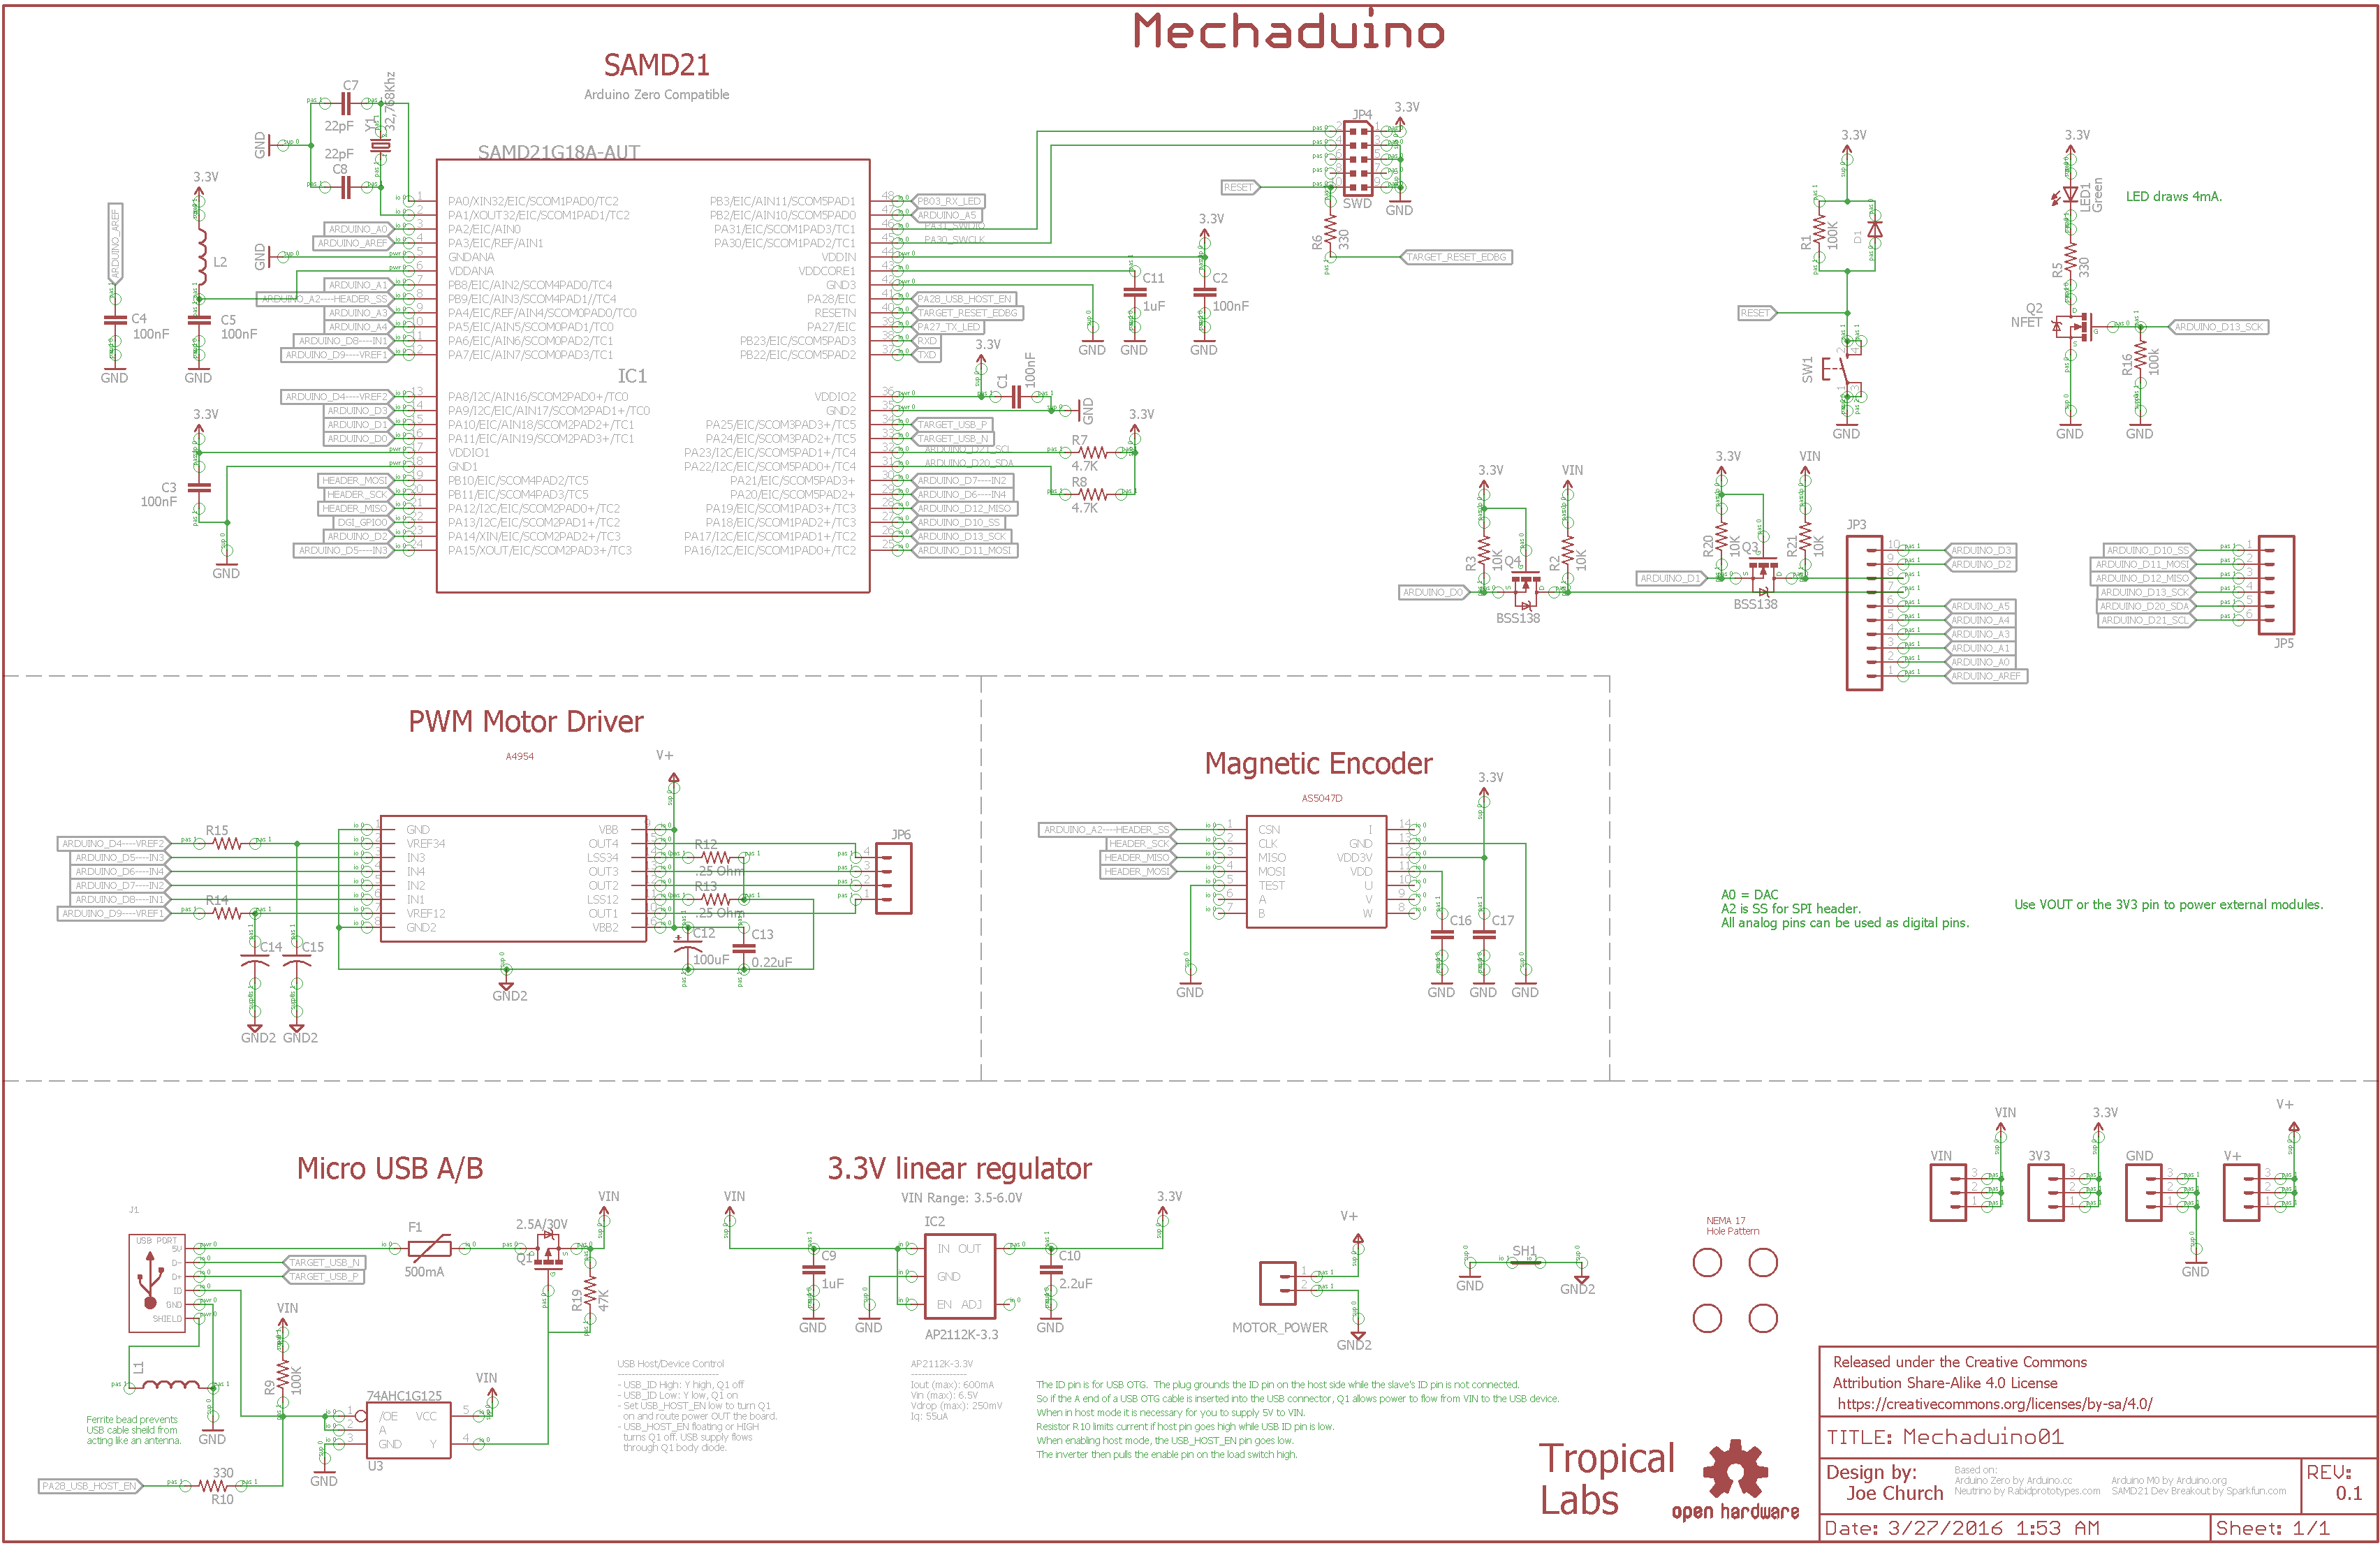 Mechaduino Stepper Motor Controller Circuit Diagram And Instructions Download